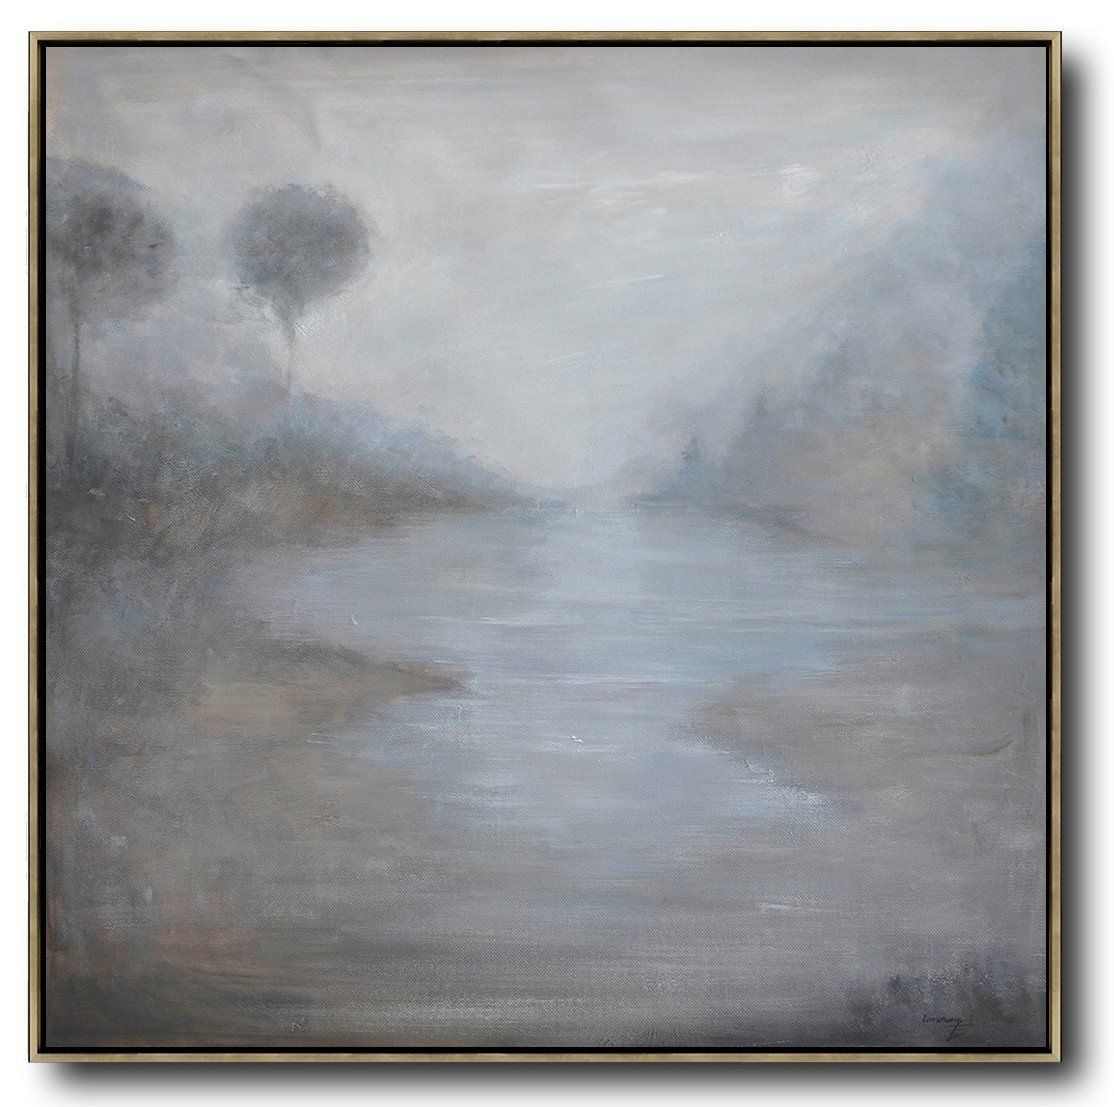 Extra Large Canvas Art,Abstract Landscape Oil Painting,Canvas Wall Art,Grey,White,Black.etc